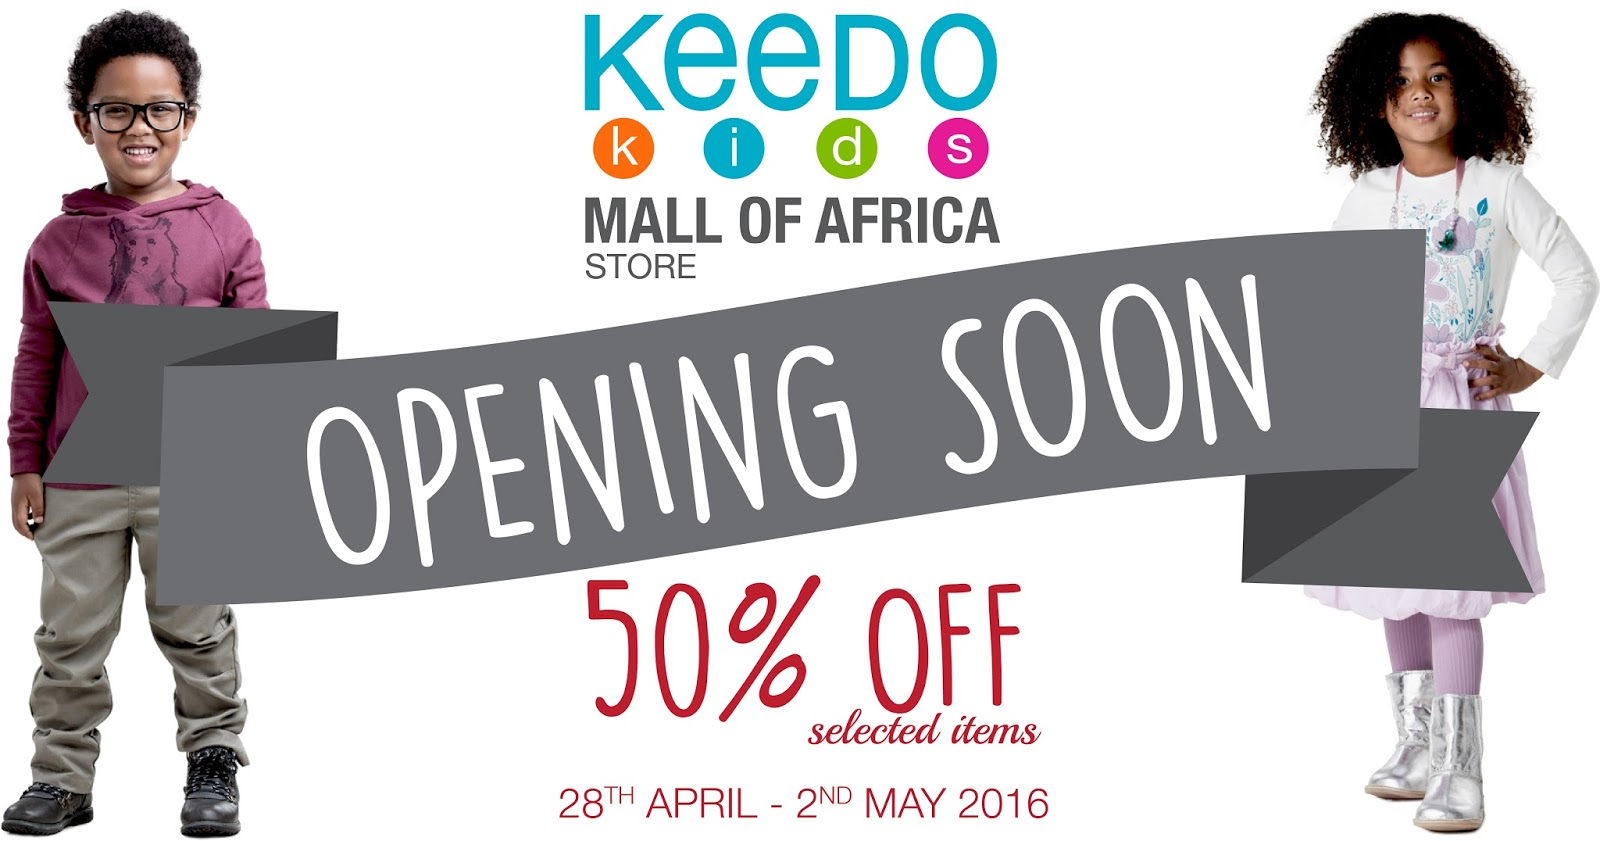 Mall of Africa: GET 50% OFF SELECTED ITEMS AT KEEDO KIDS